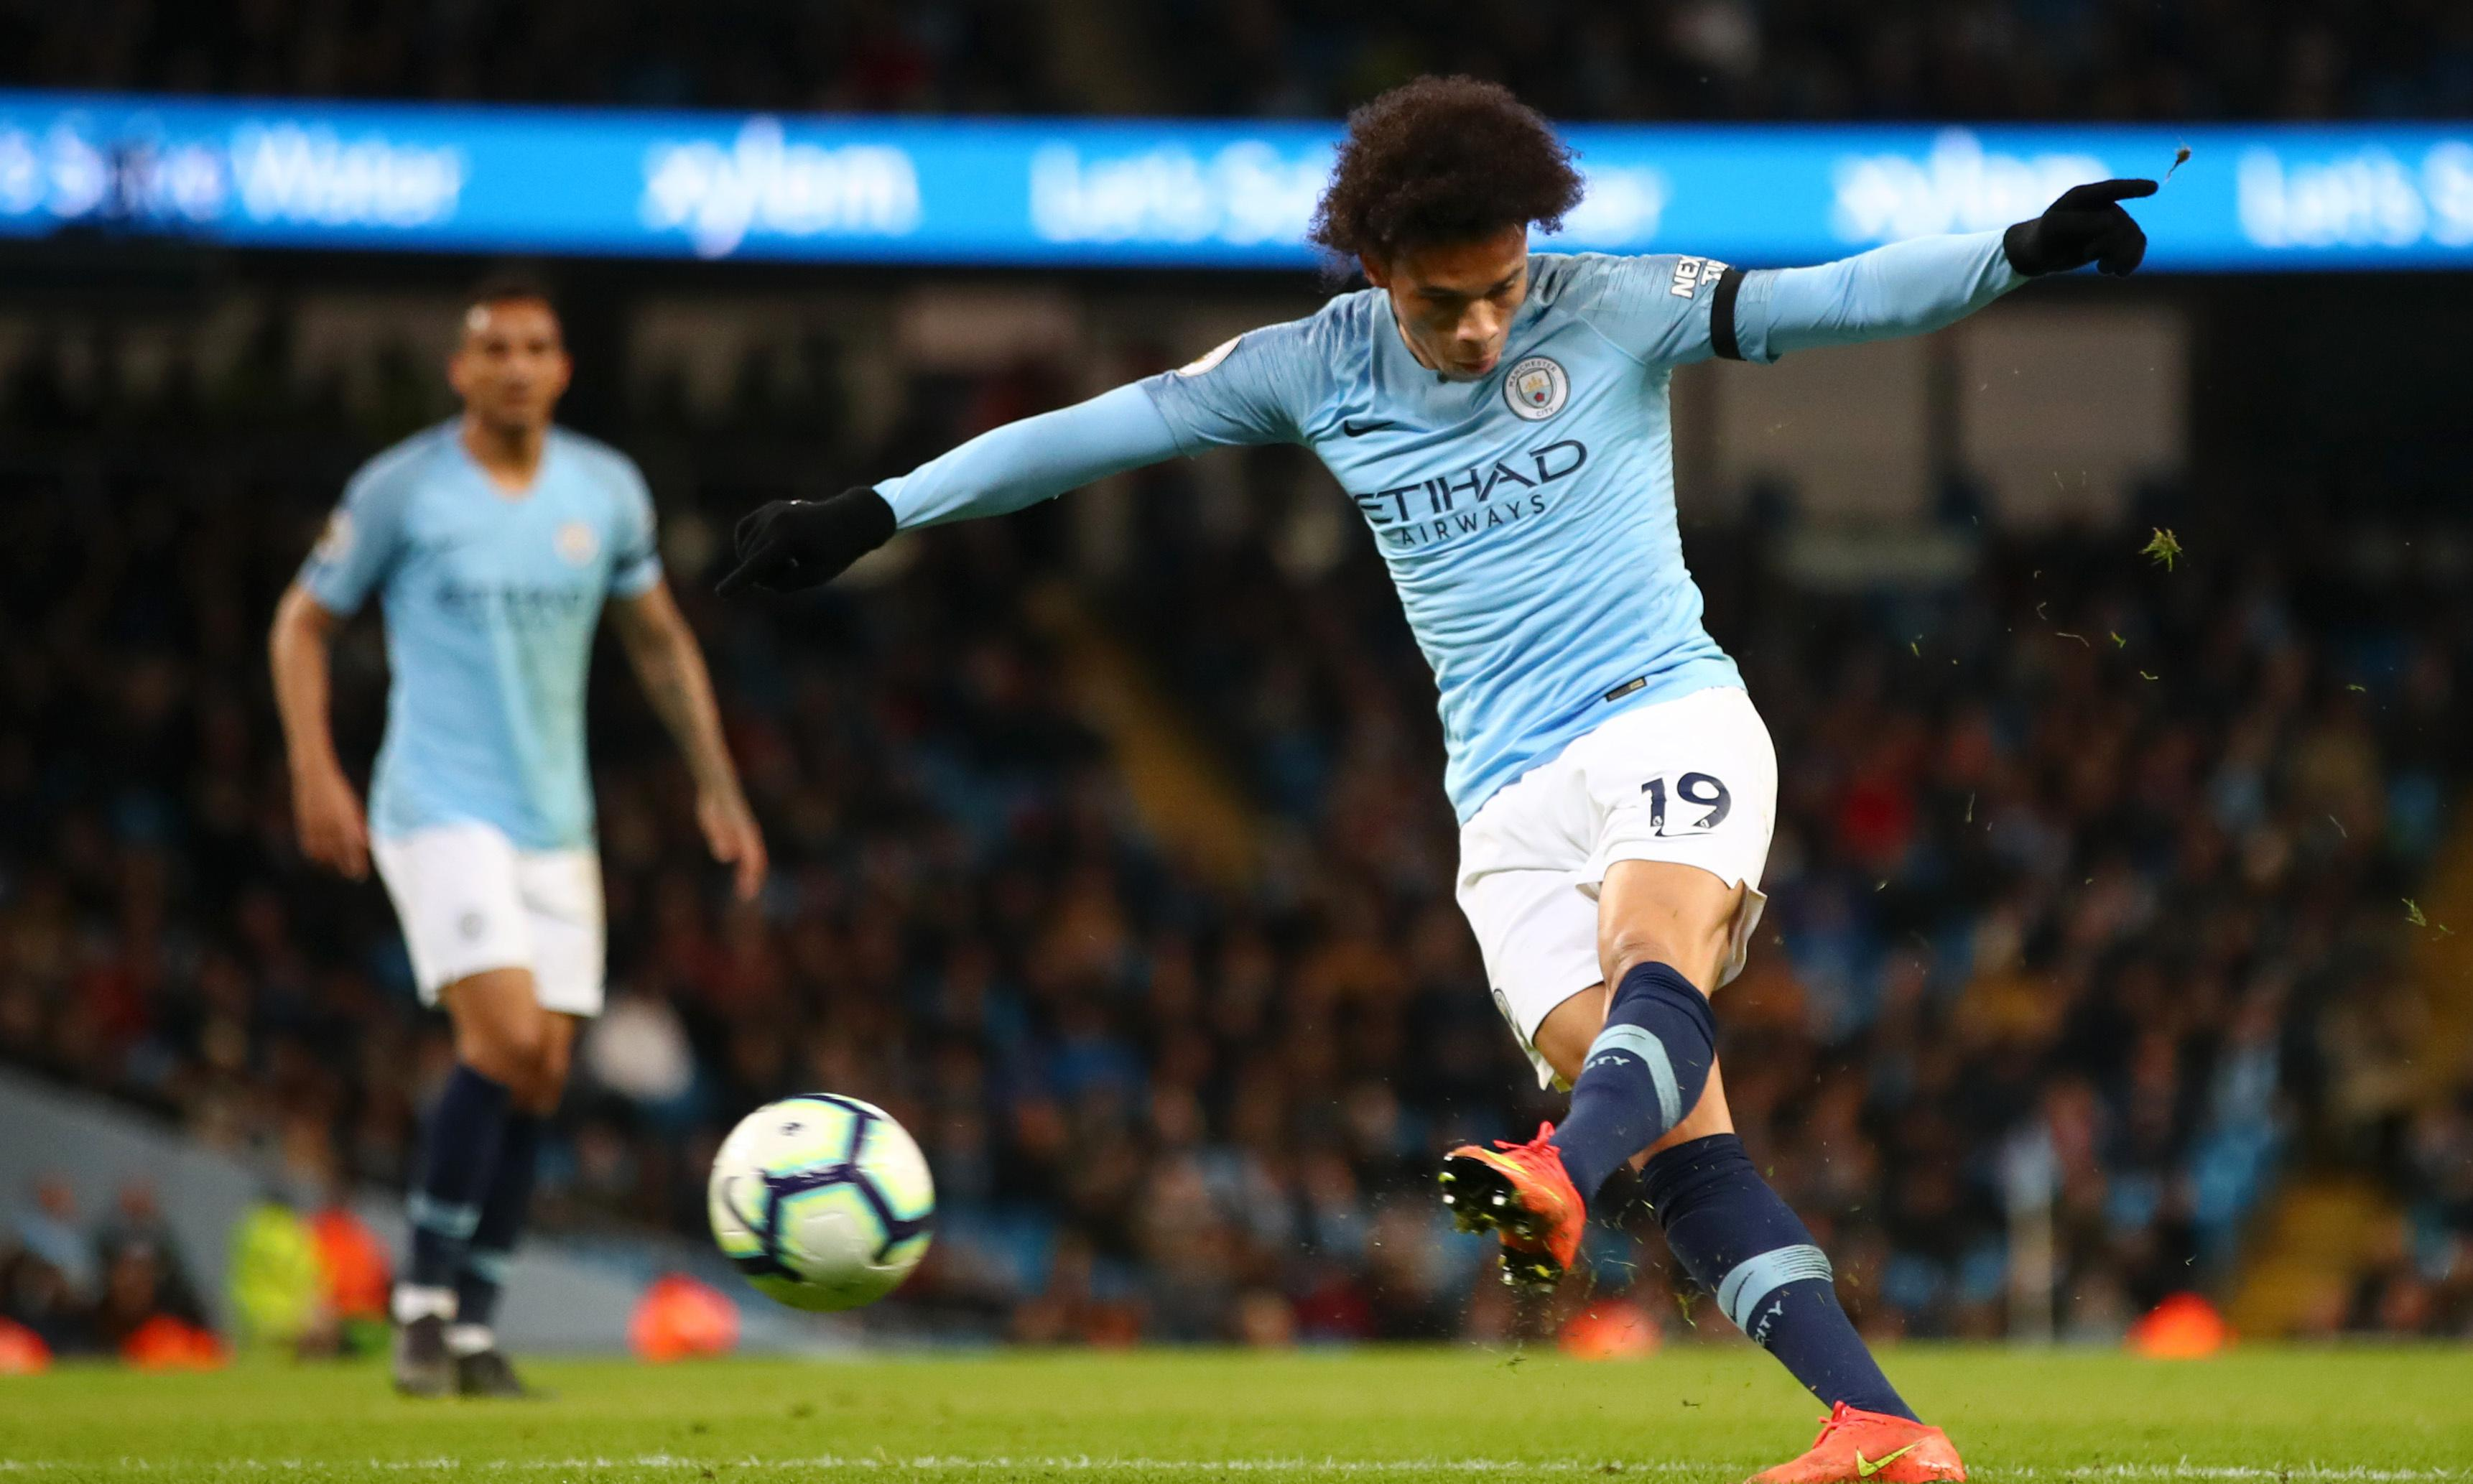 Bayern Munich set to test Manchester City with £70m bid for Leroy Sané